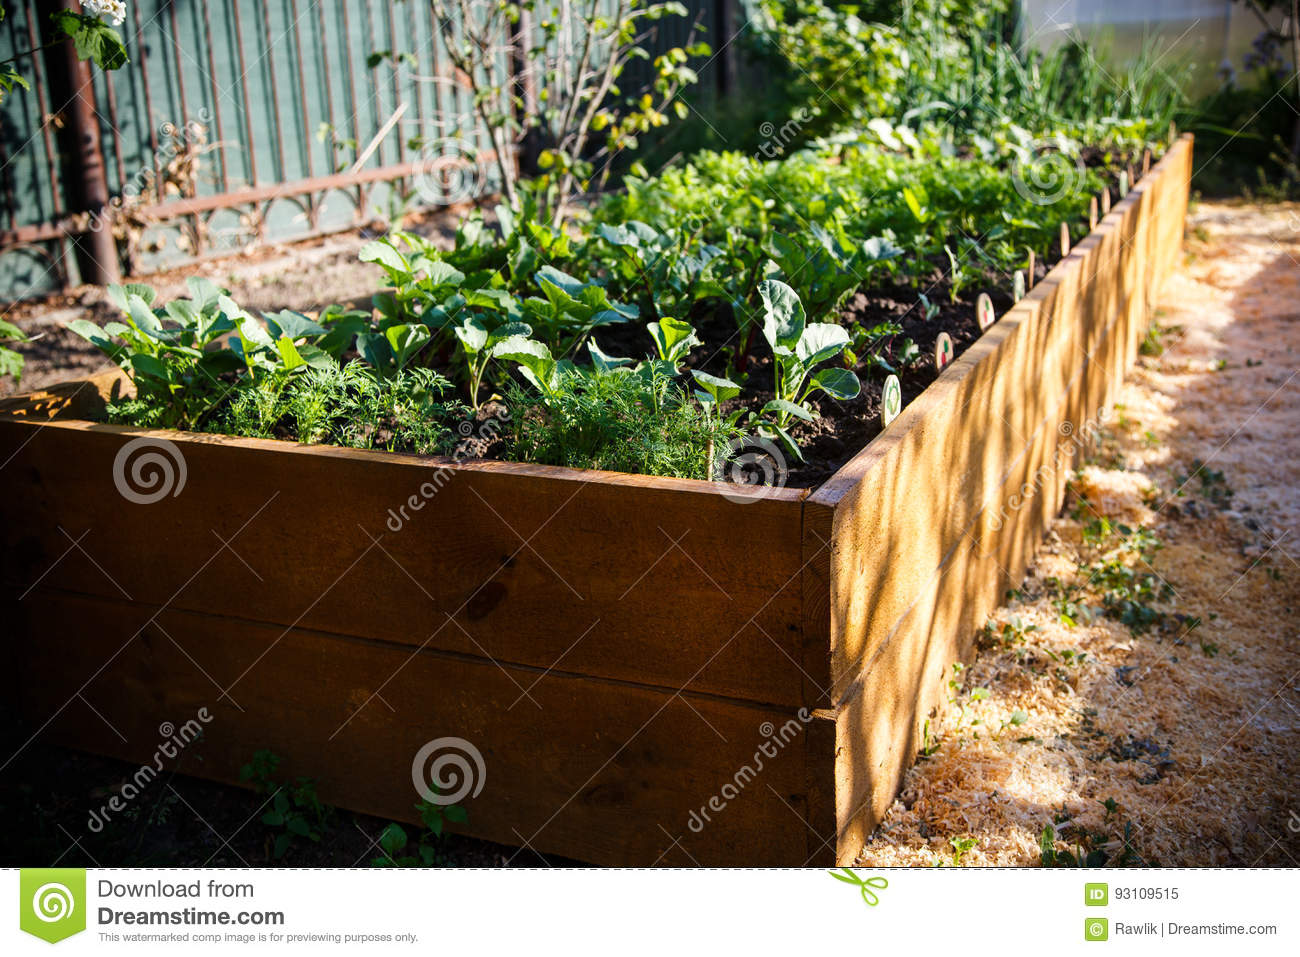 Spring Green Garden In A Wooden Box Stock Image - Image of growing ...